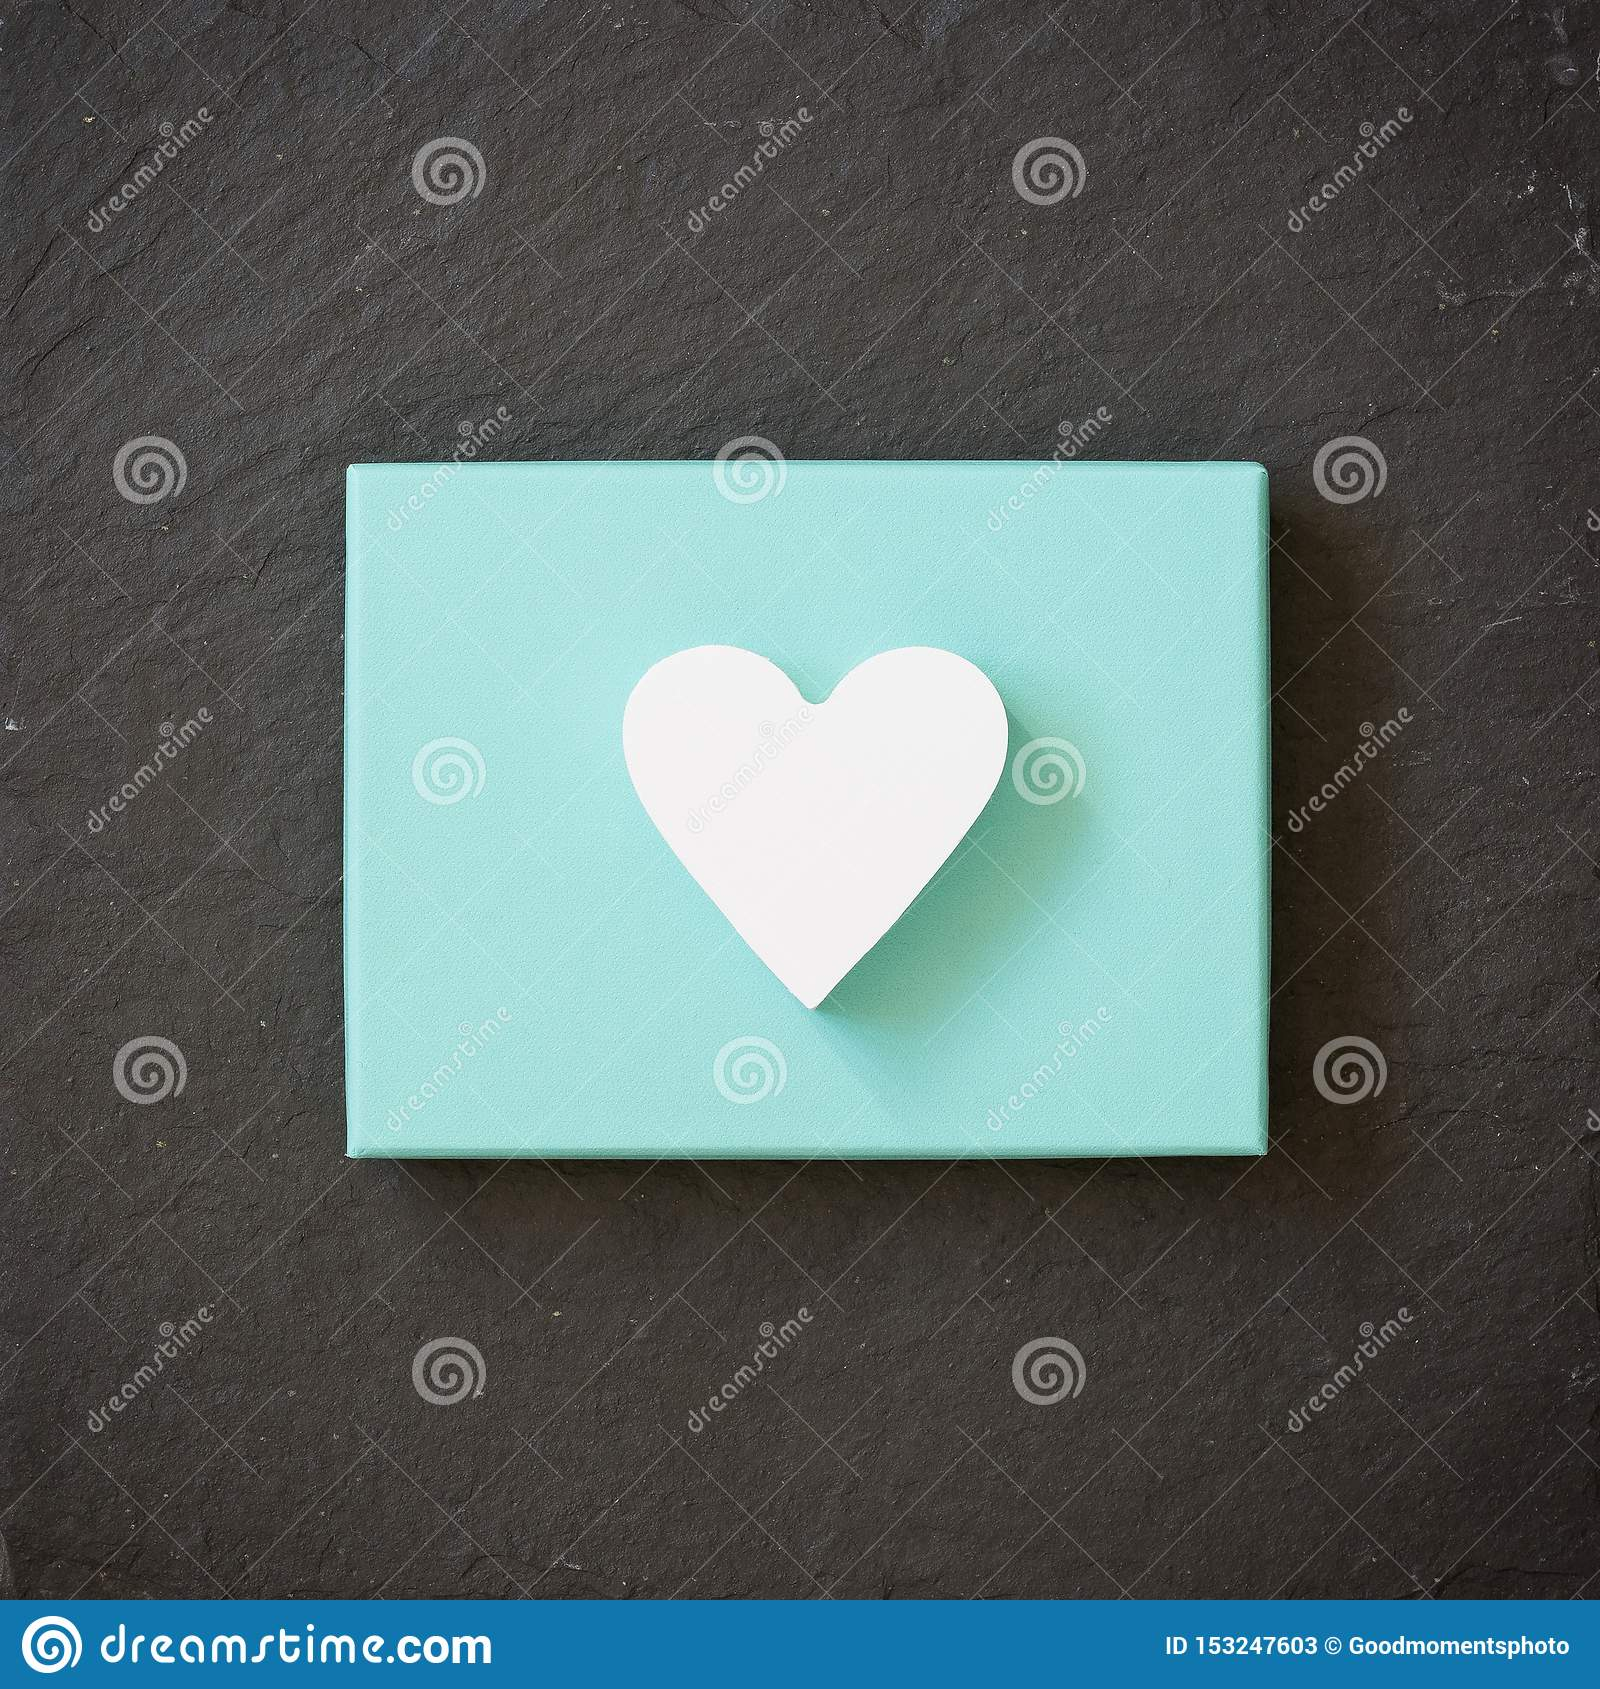 White heart on a turquoise color box on black background. Valentine`s day. Present. Gift